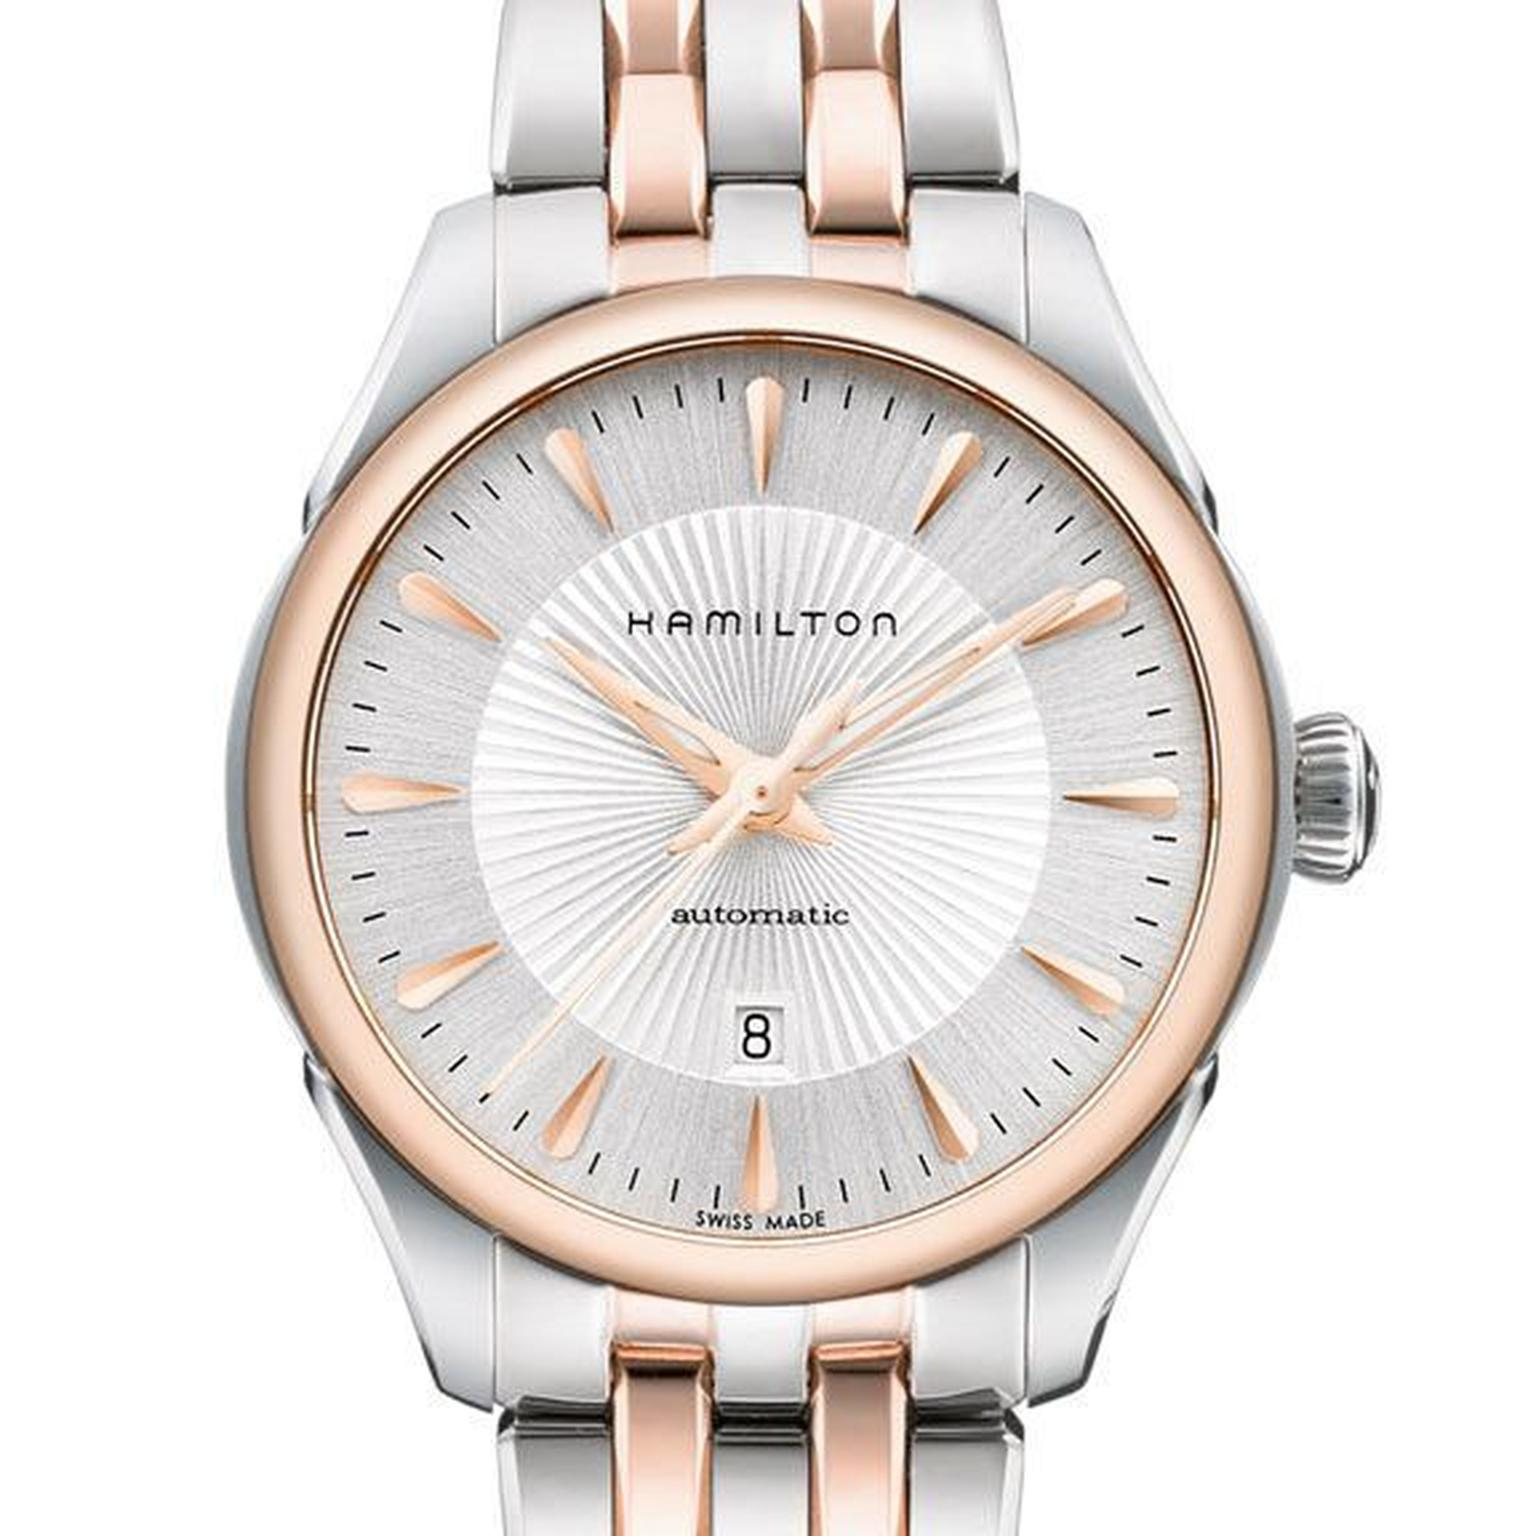 Hamiltonwatch Brandimage